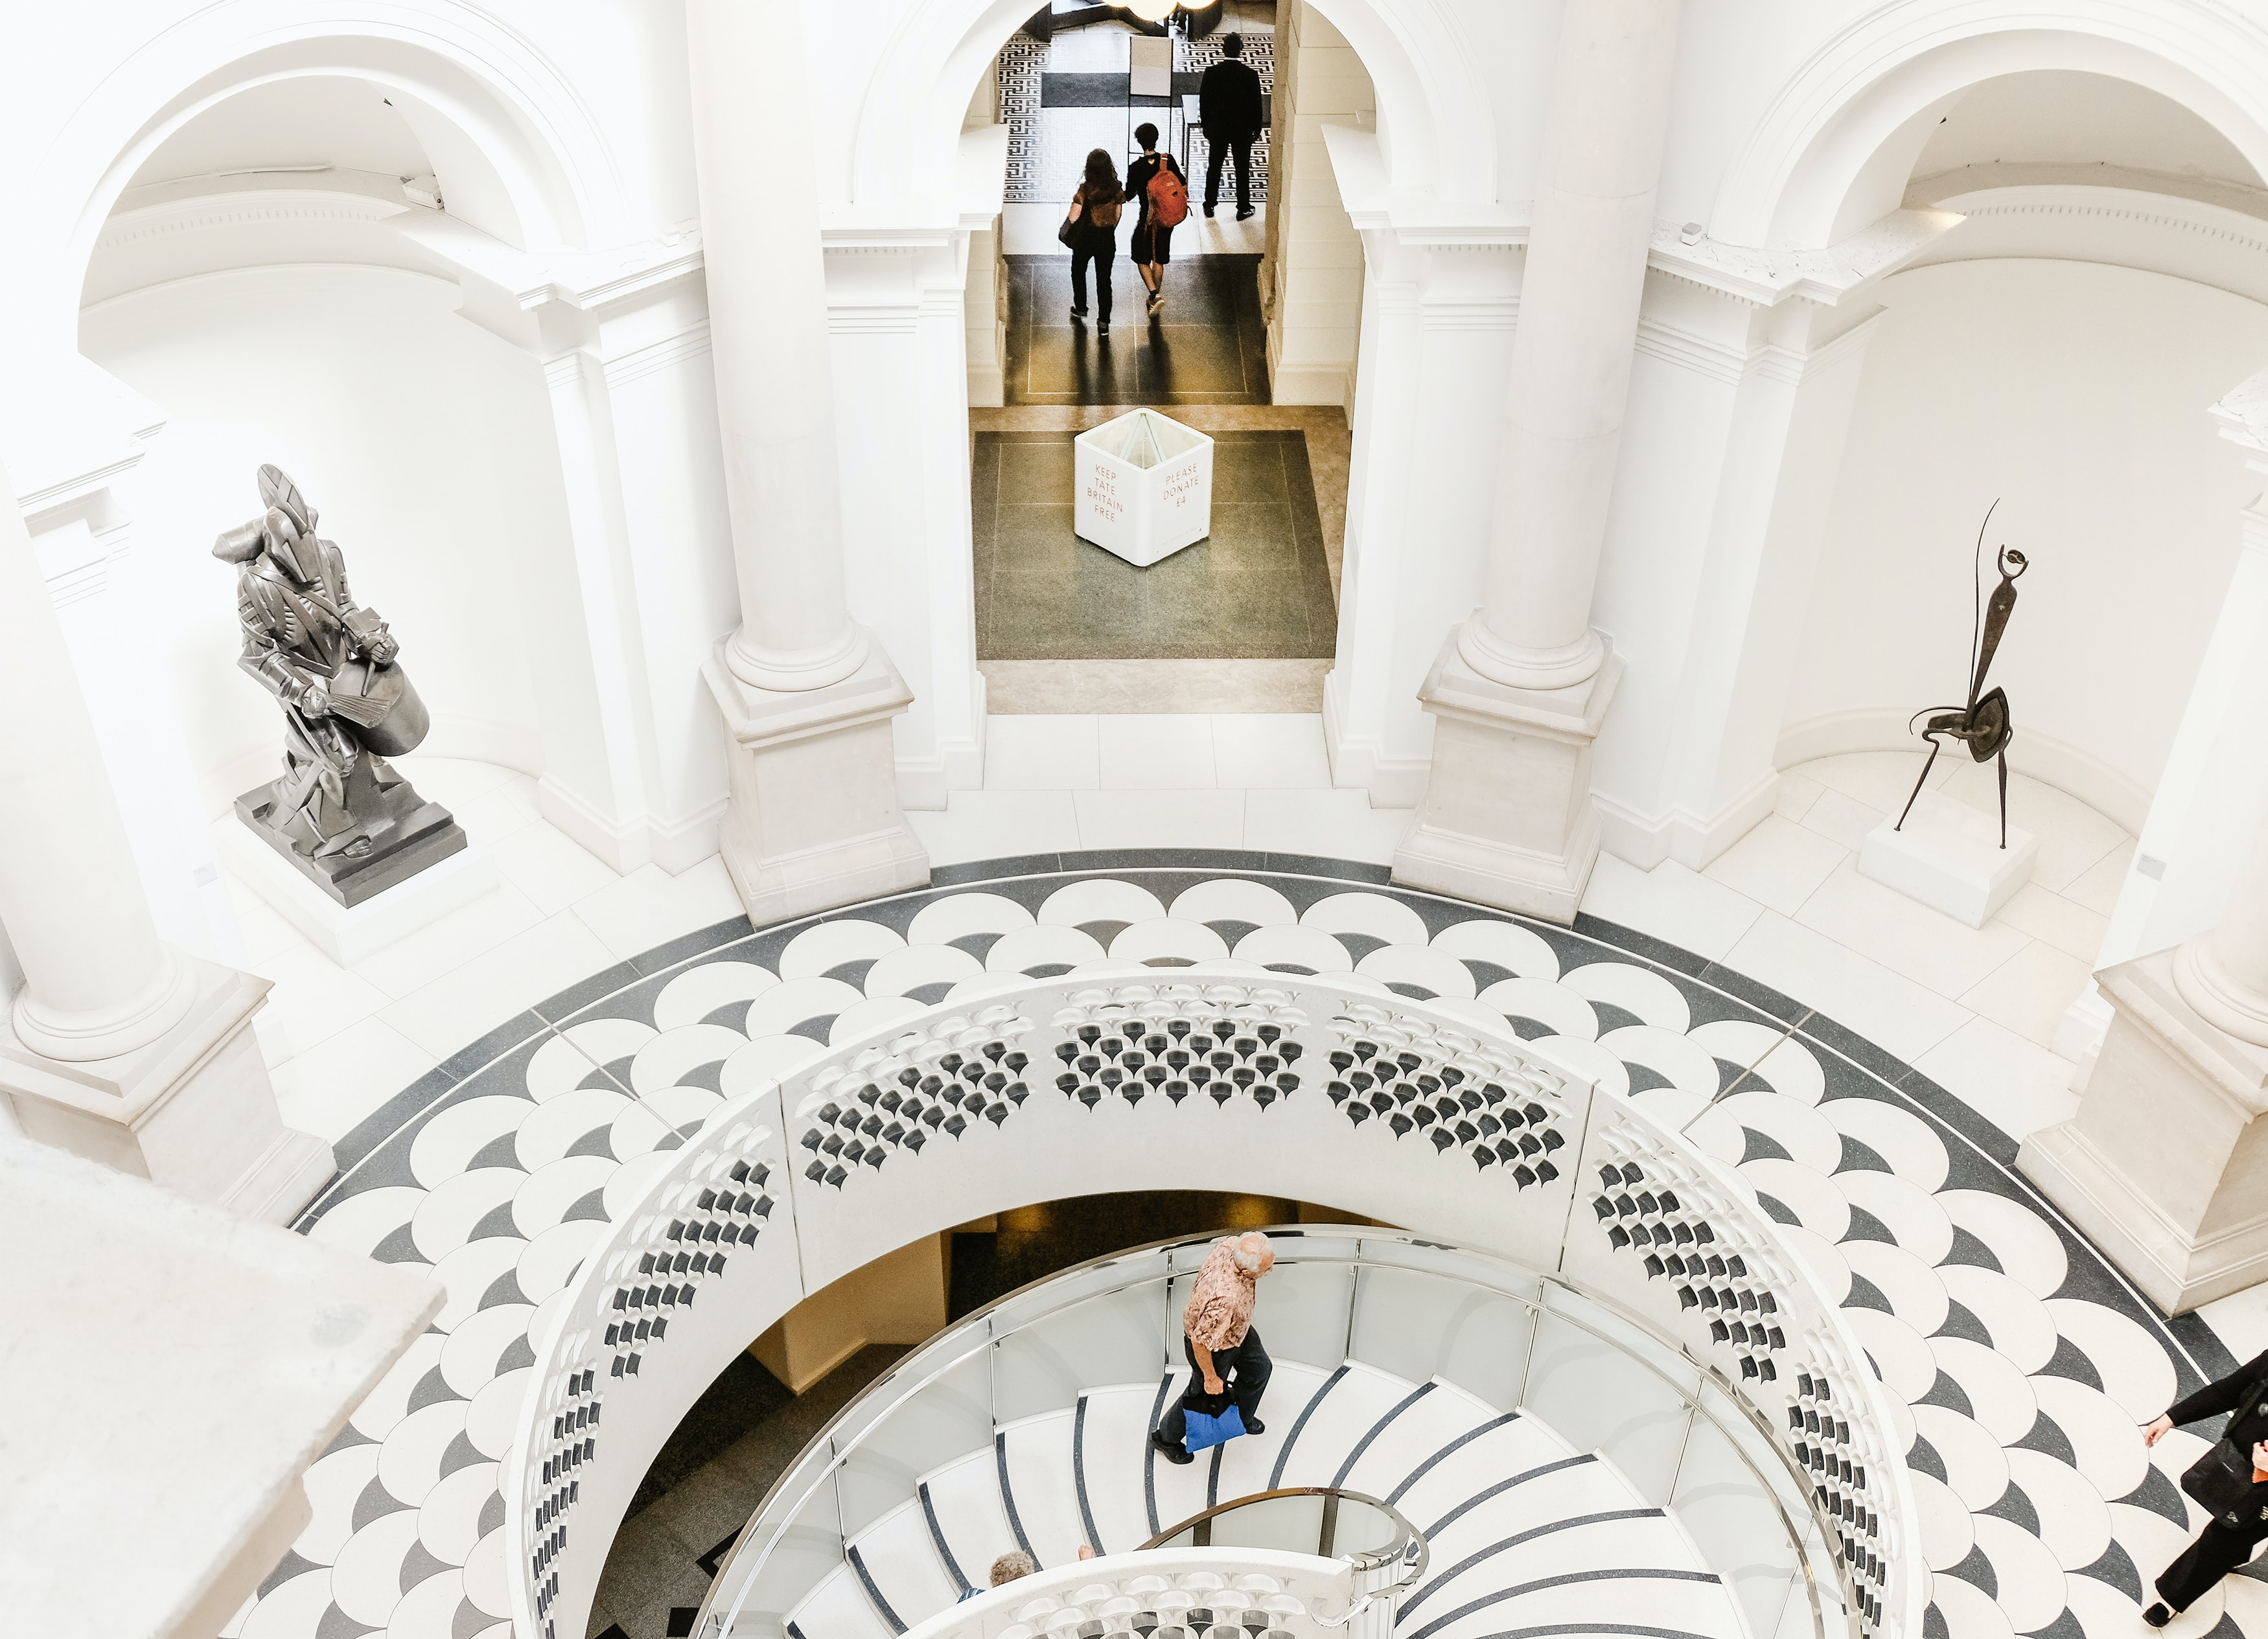 A circular staircase in the Tate Britain, primarily in white, is show from a bird's eye view. Patrons walk about looking at the art pieces.